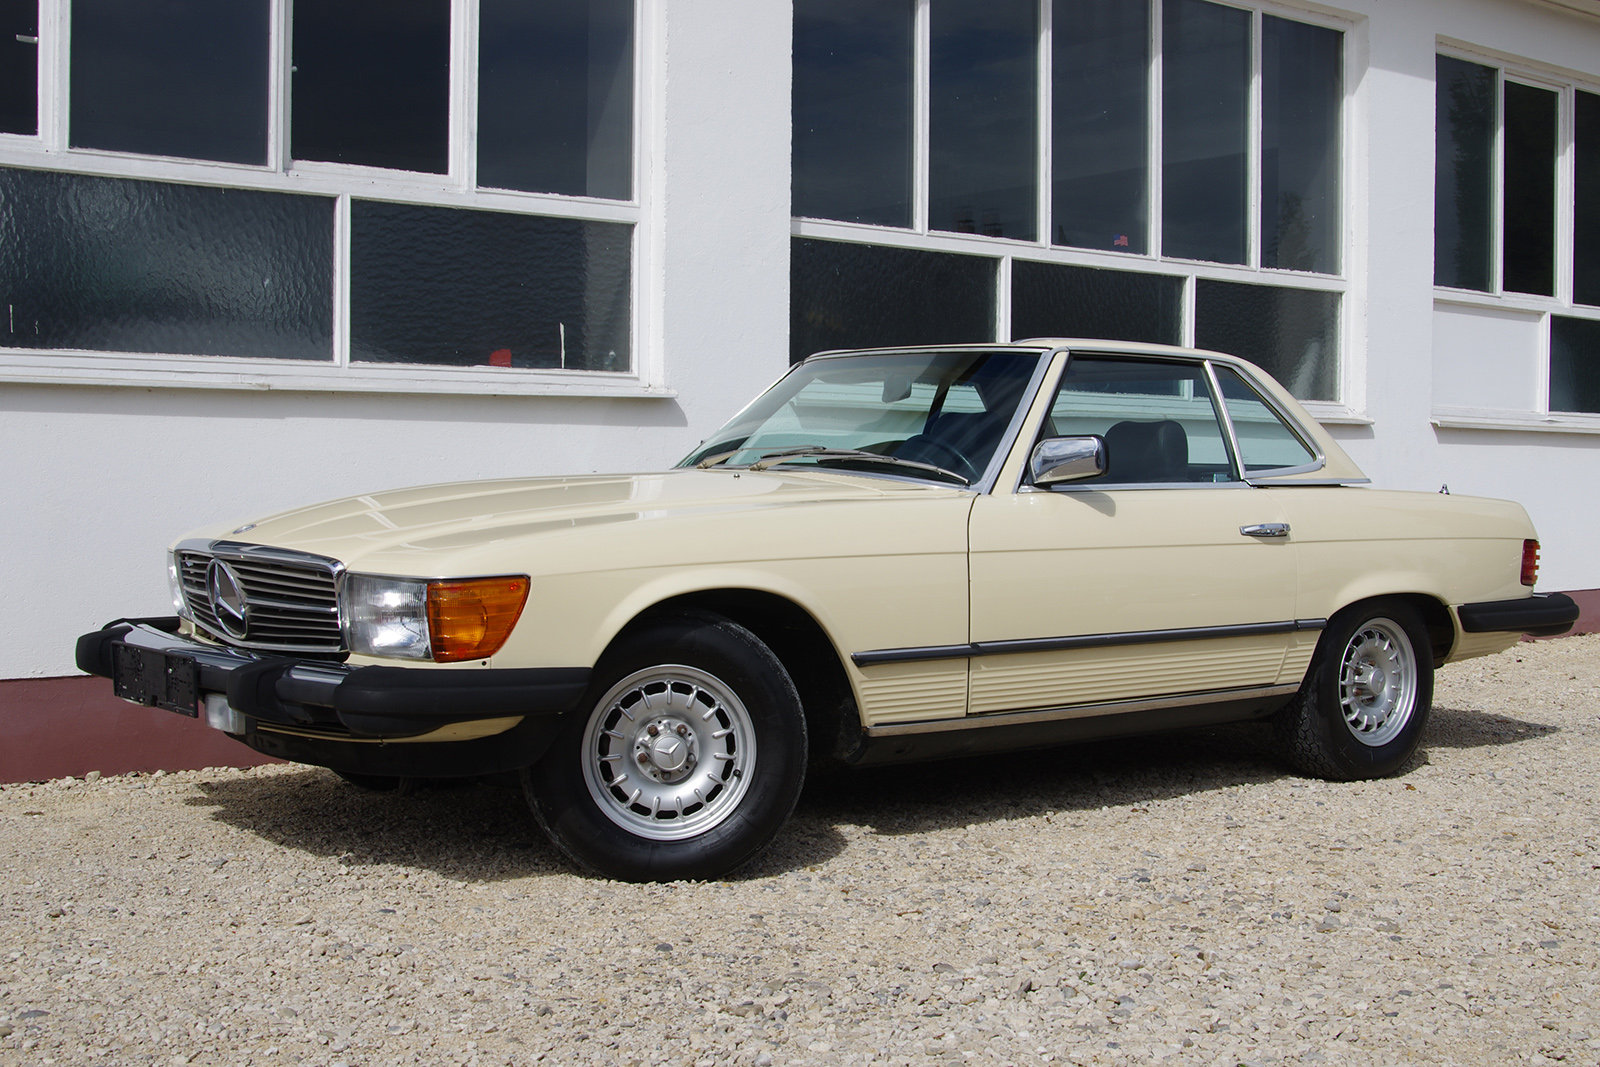 1982 Mercedes-Benz 380 SL - R 107 - partially restored SOLD (picture 1 of 6)